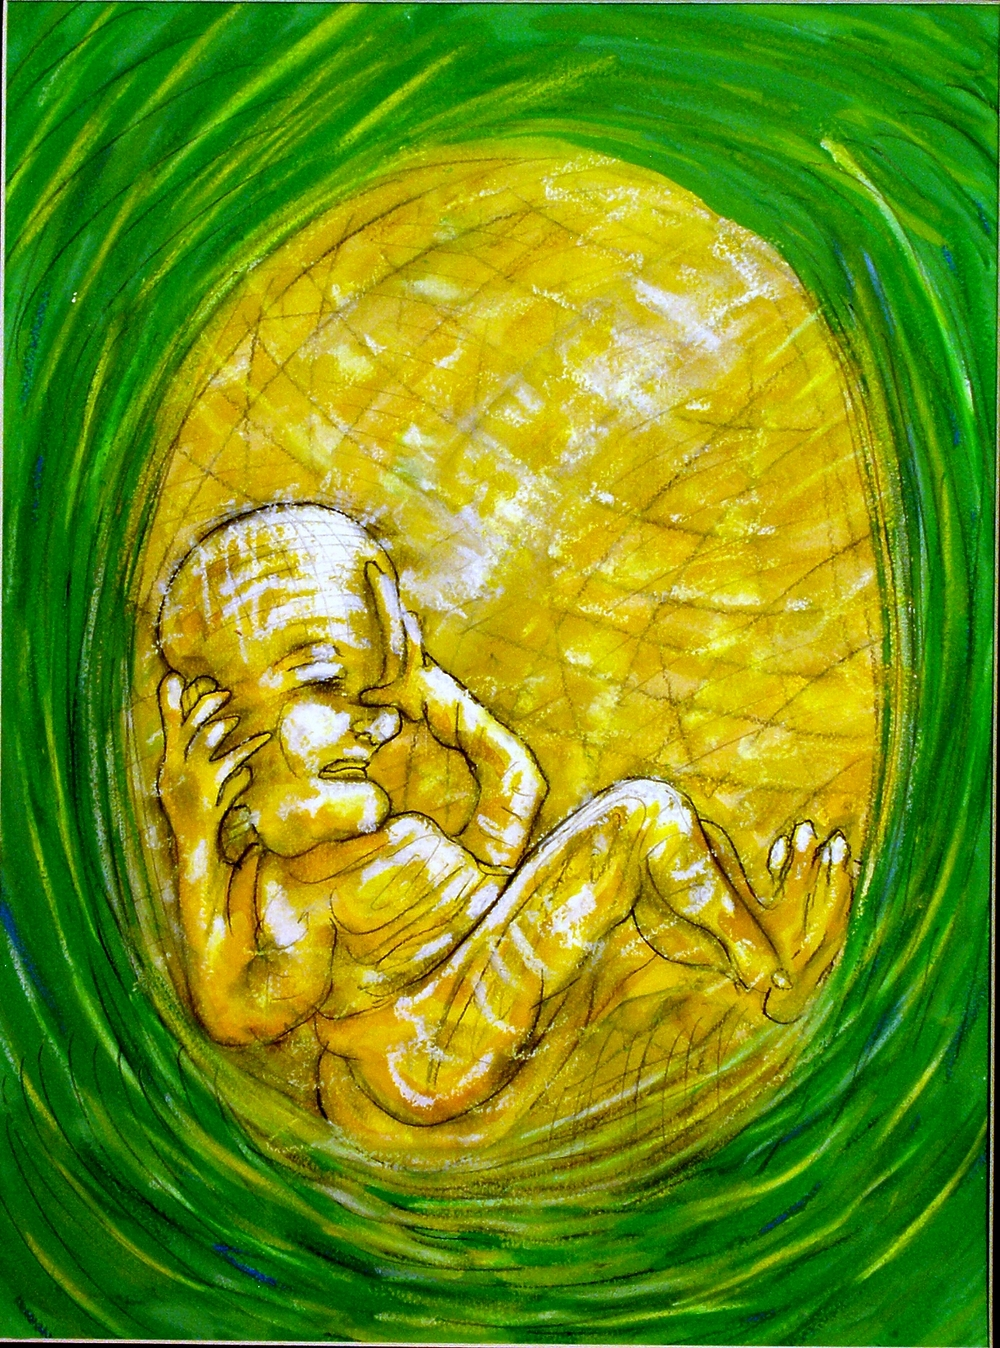 My Daughters Embryonic State Covering Ears    2007 Gouache, Oil Pastel mixed media painting on watercolor paper 16H x 12W inches